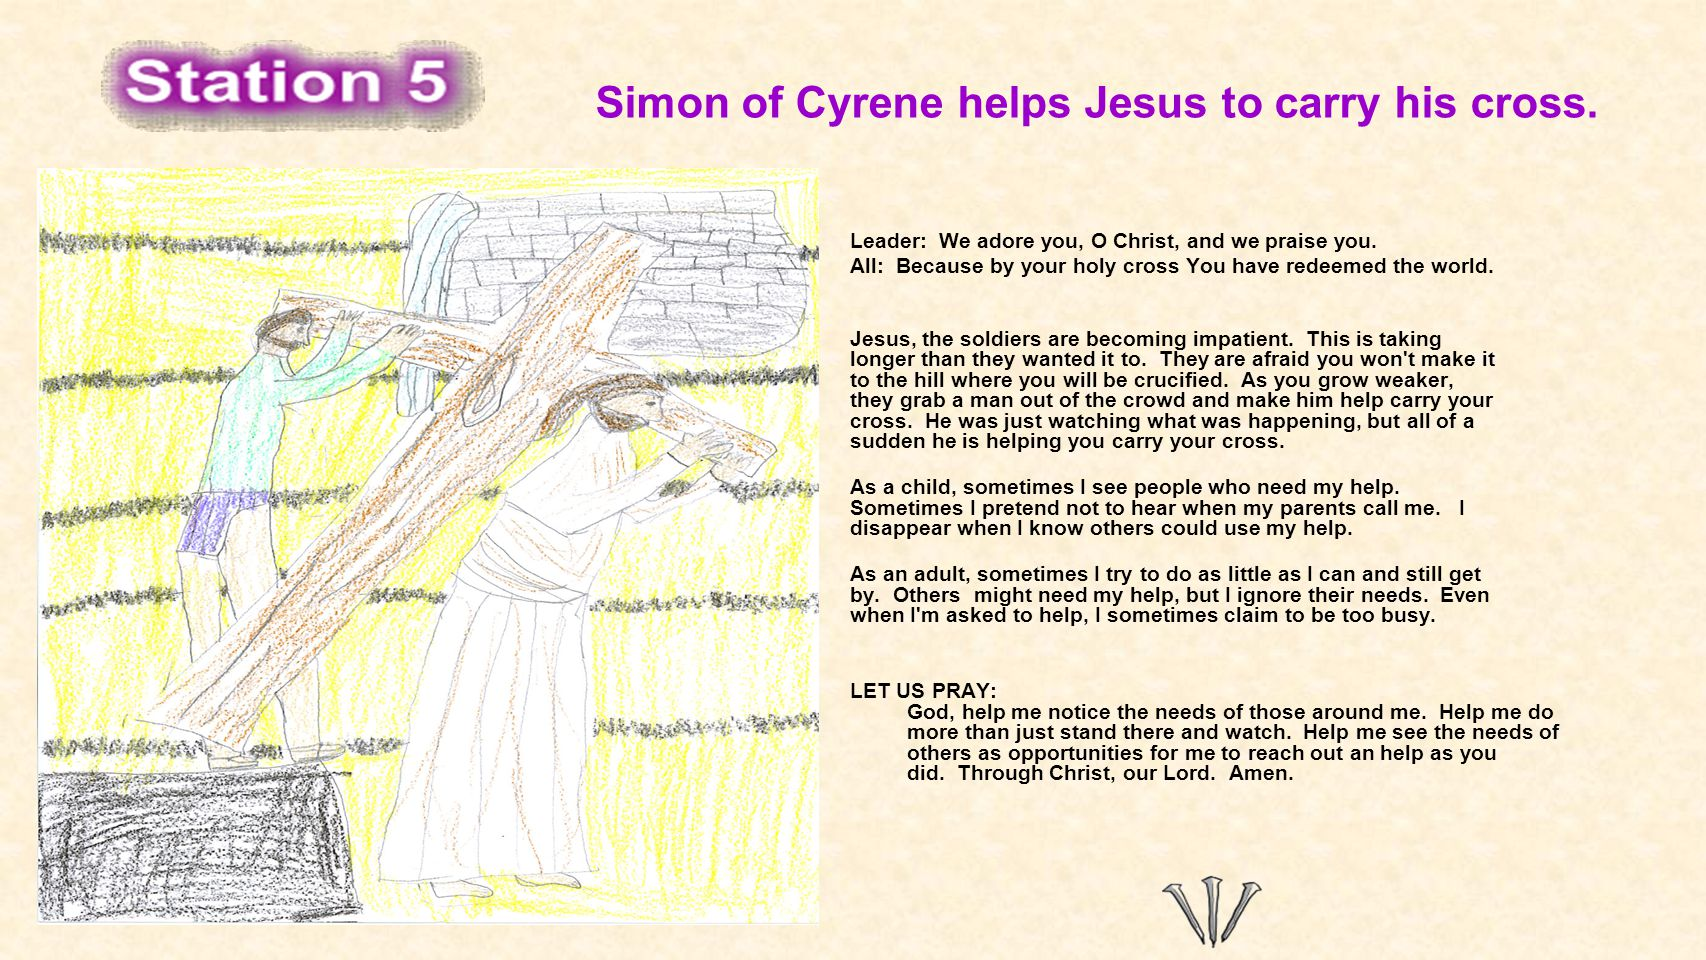 Simon of Cyrene helps Jesus to carry his cross. Leader: We adore you, O Christ, and we praise you. All: Because by your holy cross You have redeemed t